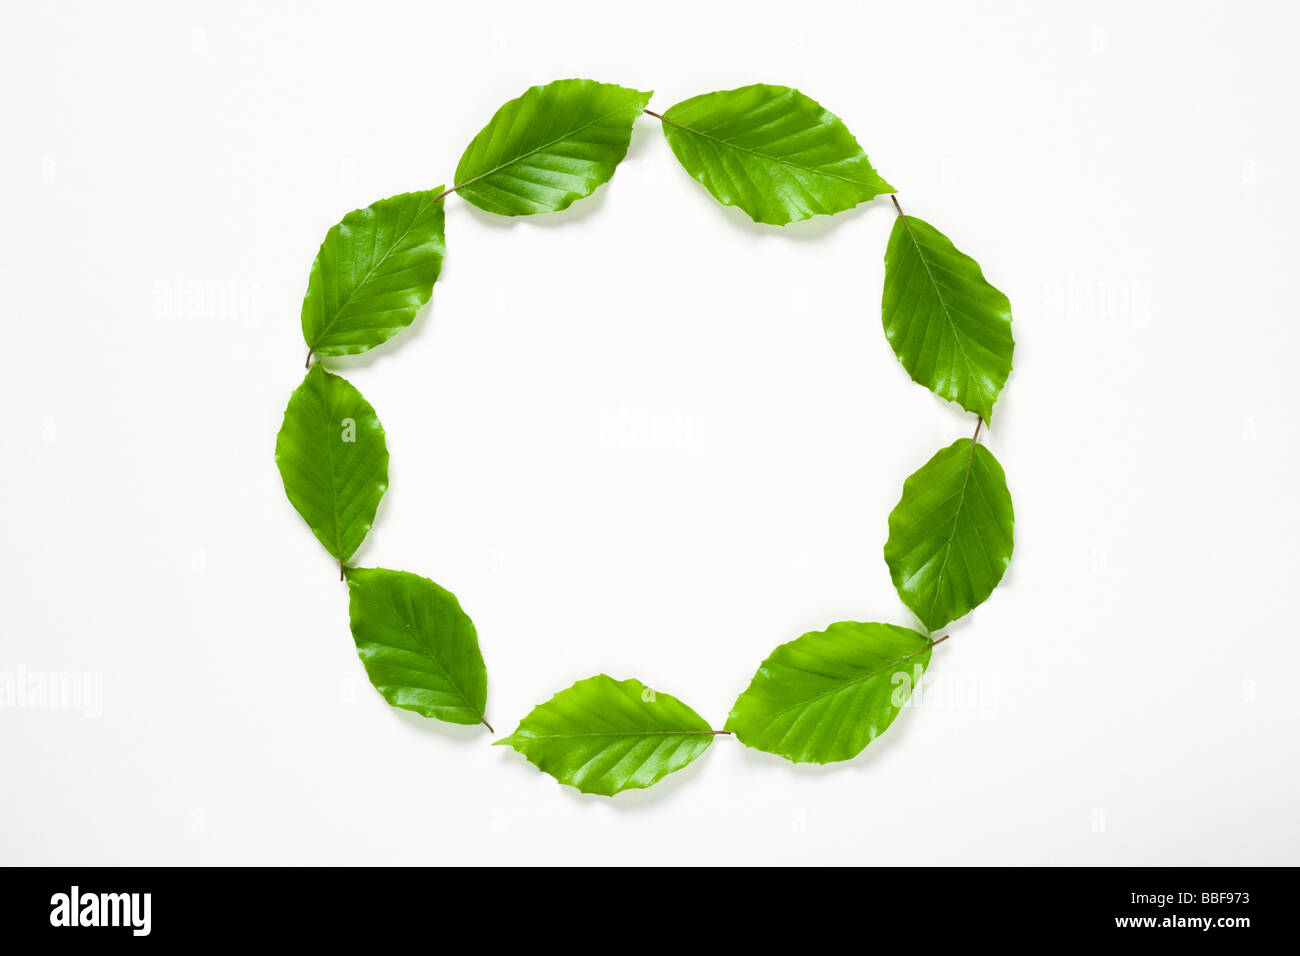 Circle of leaves. Beech leaves. - Stock Image